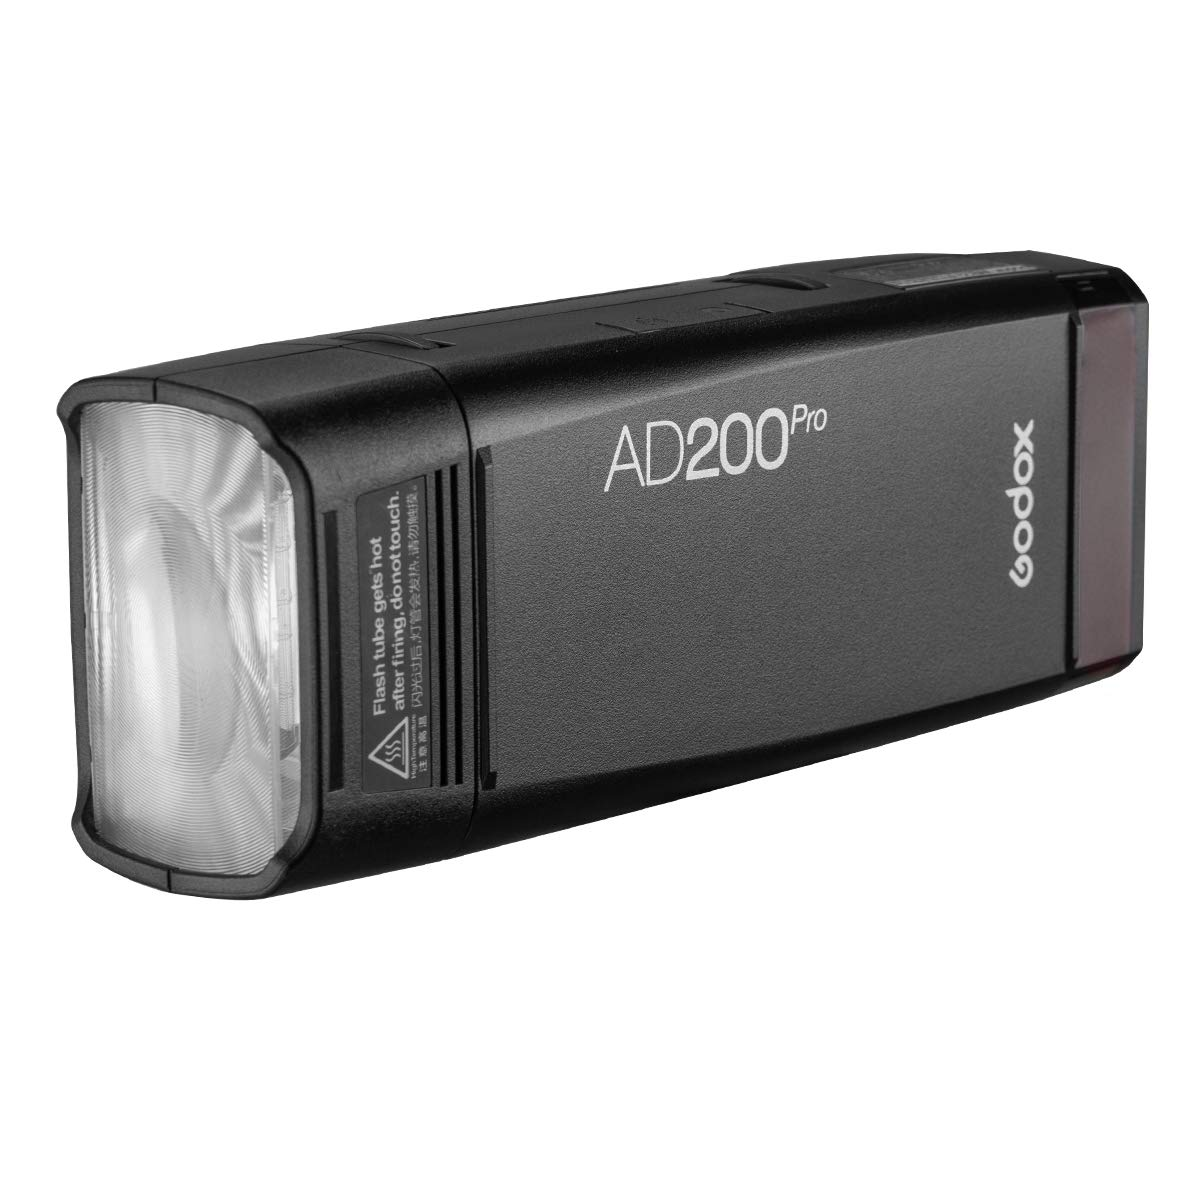 Godox AD200Pro 200ws 2.4G TTL Speedlite Flash Strobe 1/8000 HSS Monolight,500 Full Power Flashes, 2900mAh Battery,0.01-2.1s Recycling, Bare Bulb/Speedlite Fresnel Flash Head (AD200 Upgrade Version) by Godox (Image #2)